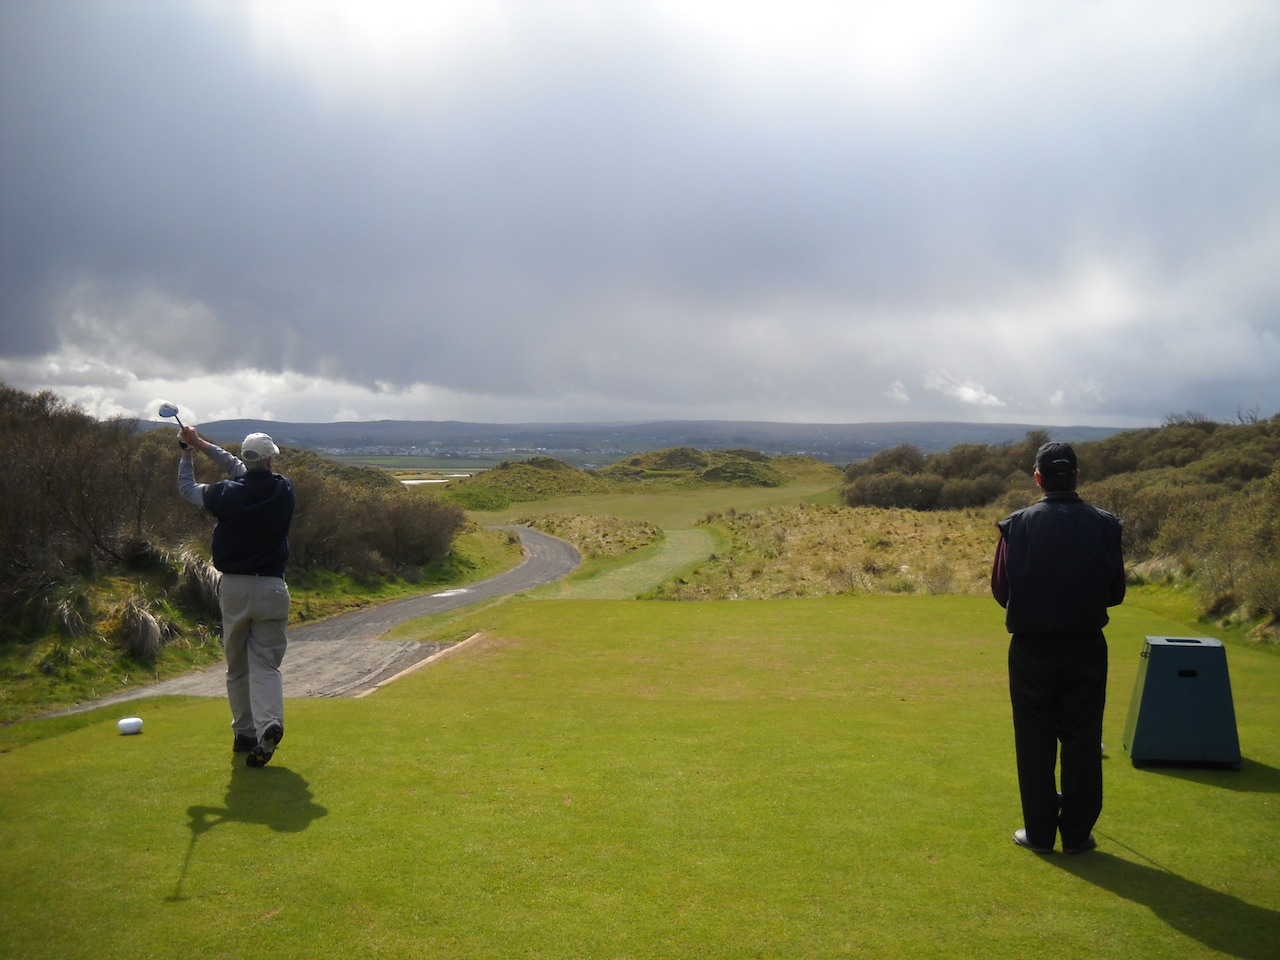 Hooked: Ireland's Golf Courses: April 2012